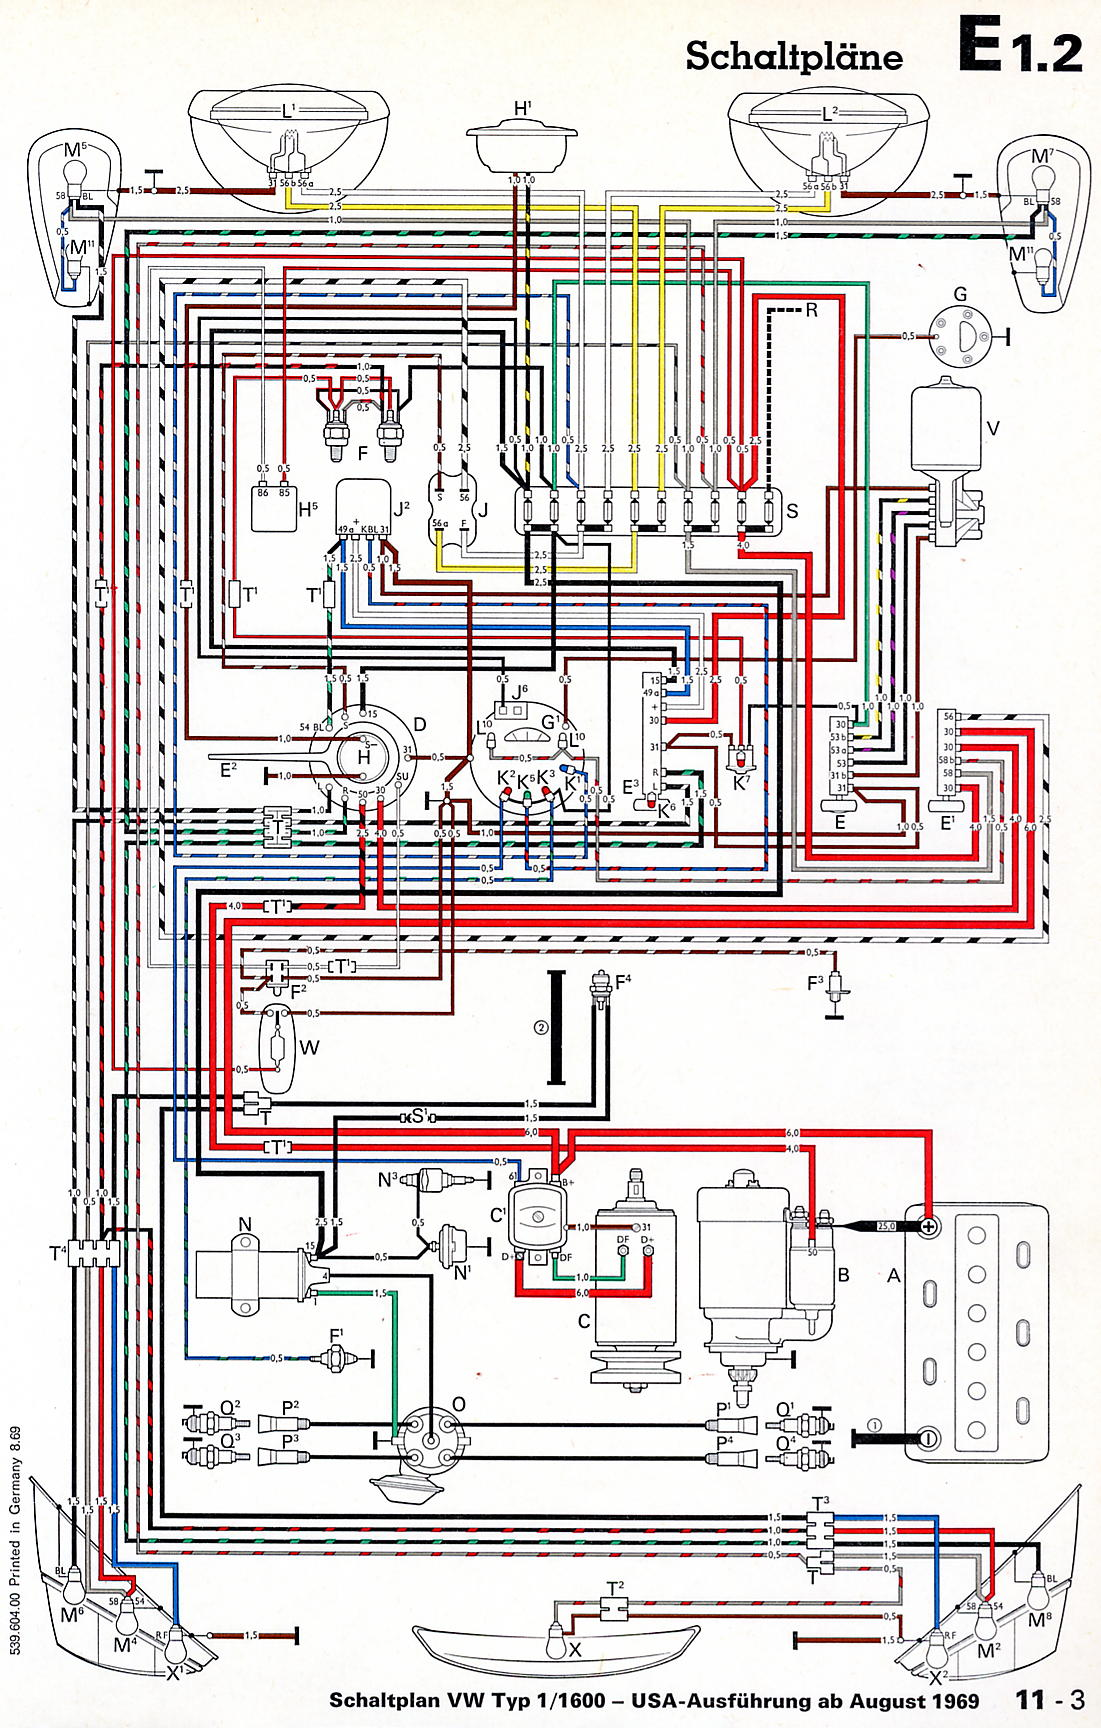 vwvortex com dead alternator or user error here s the original 1970 wiring diagram generator